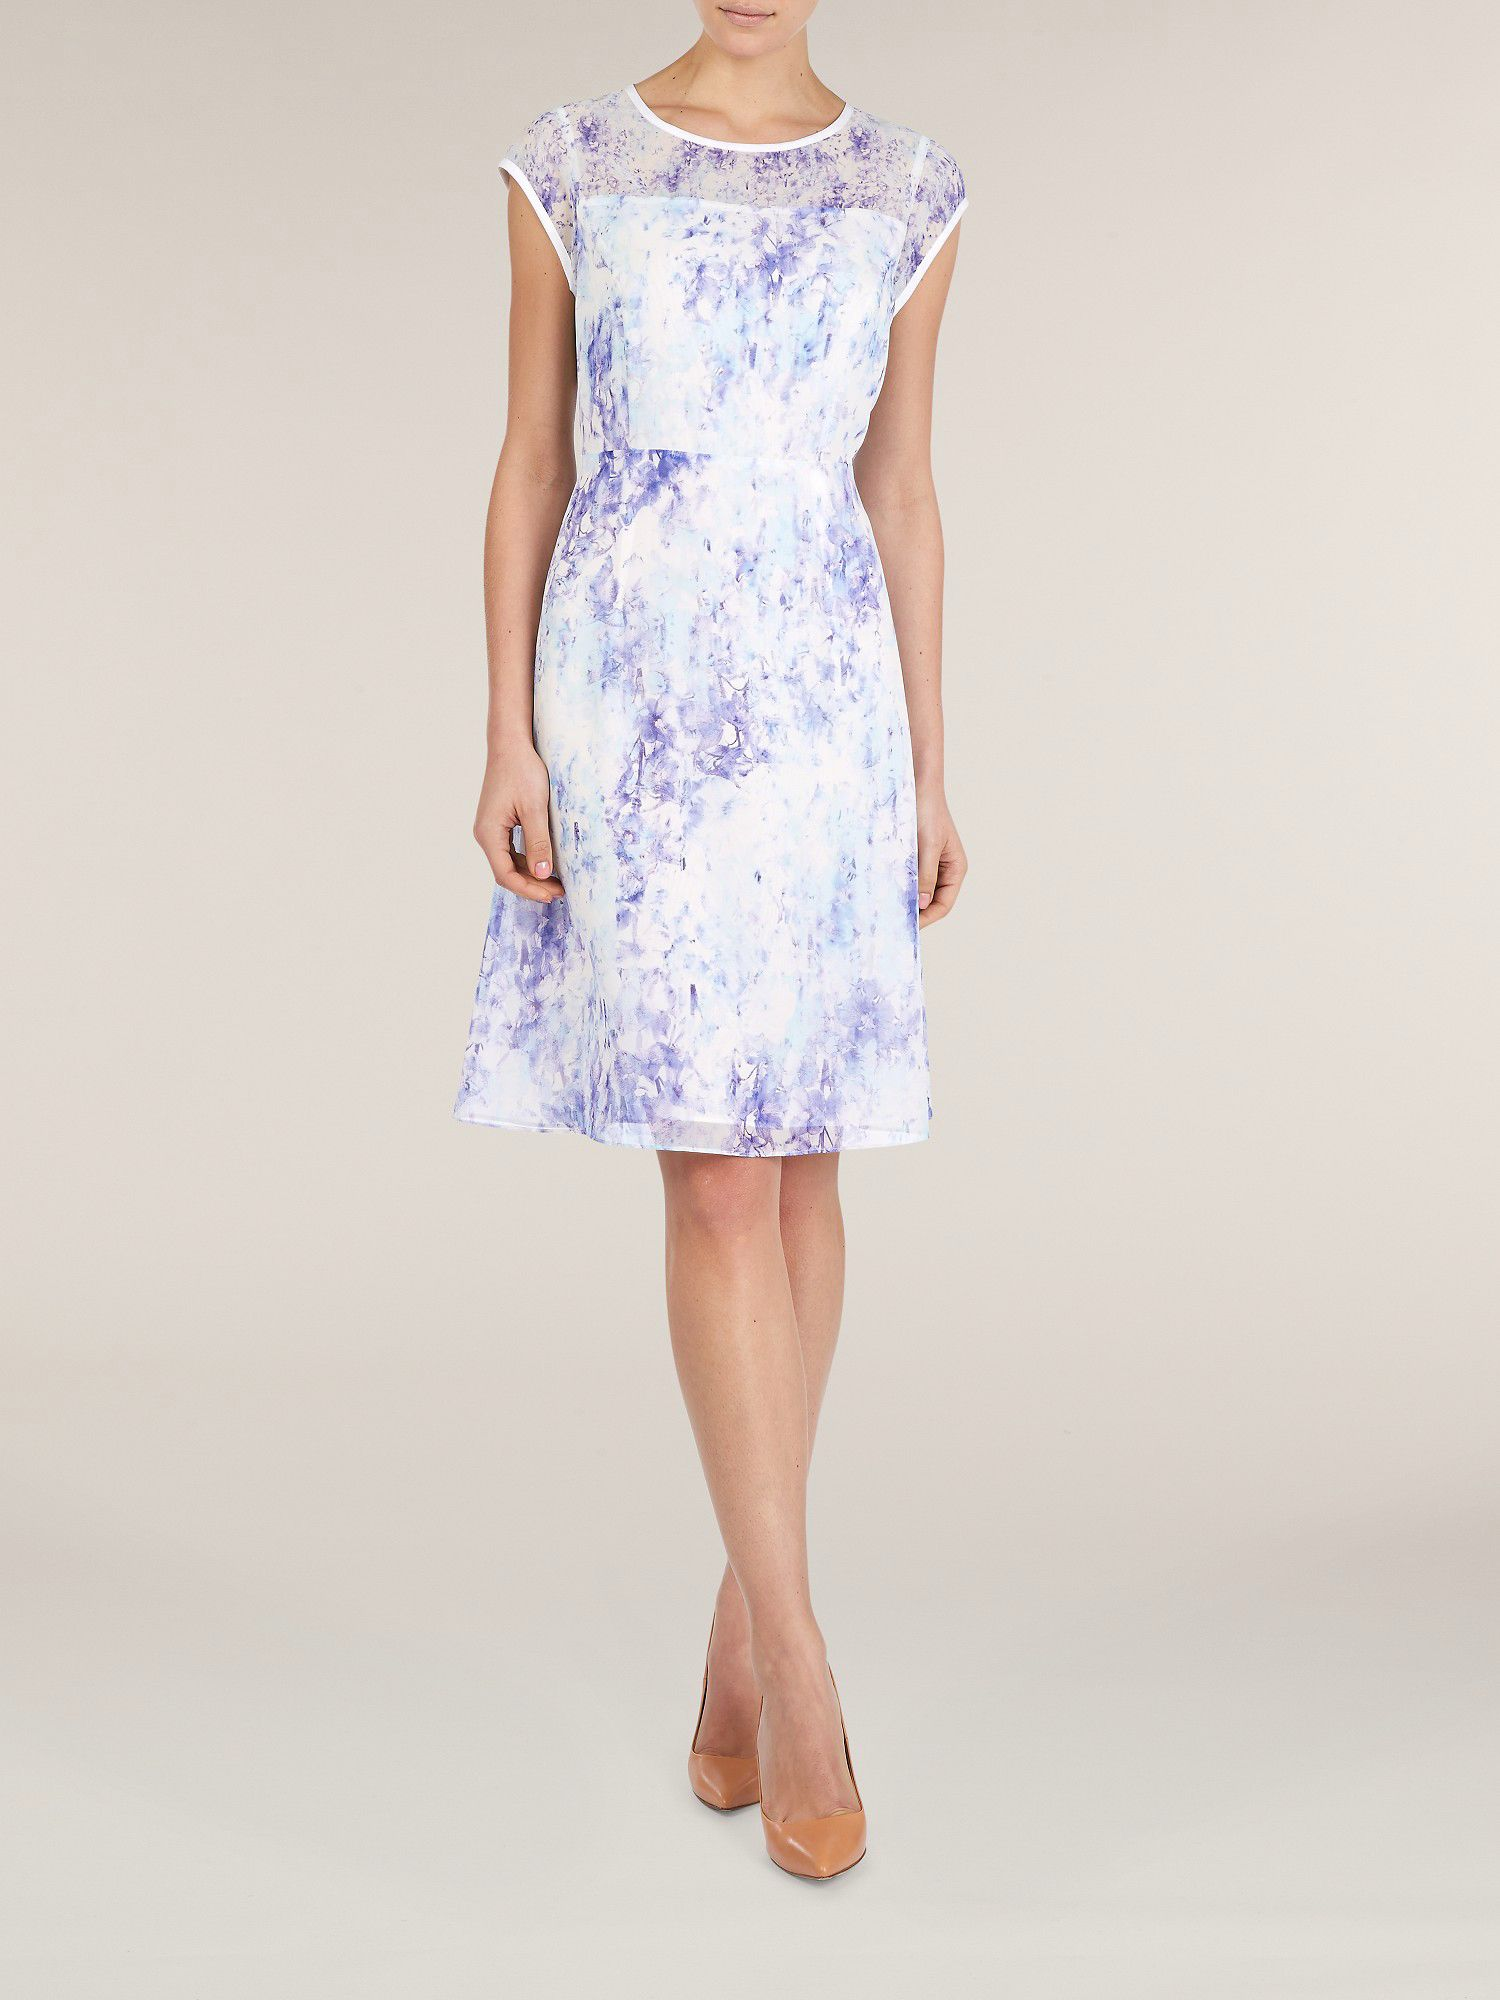 Wisteria floral print organza dress